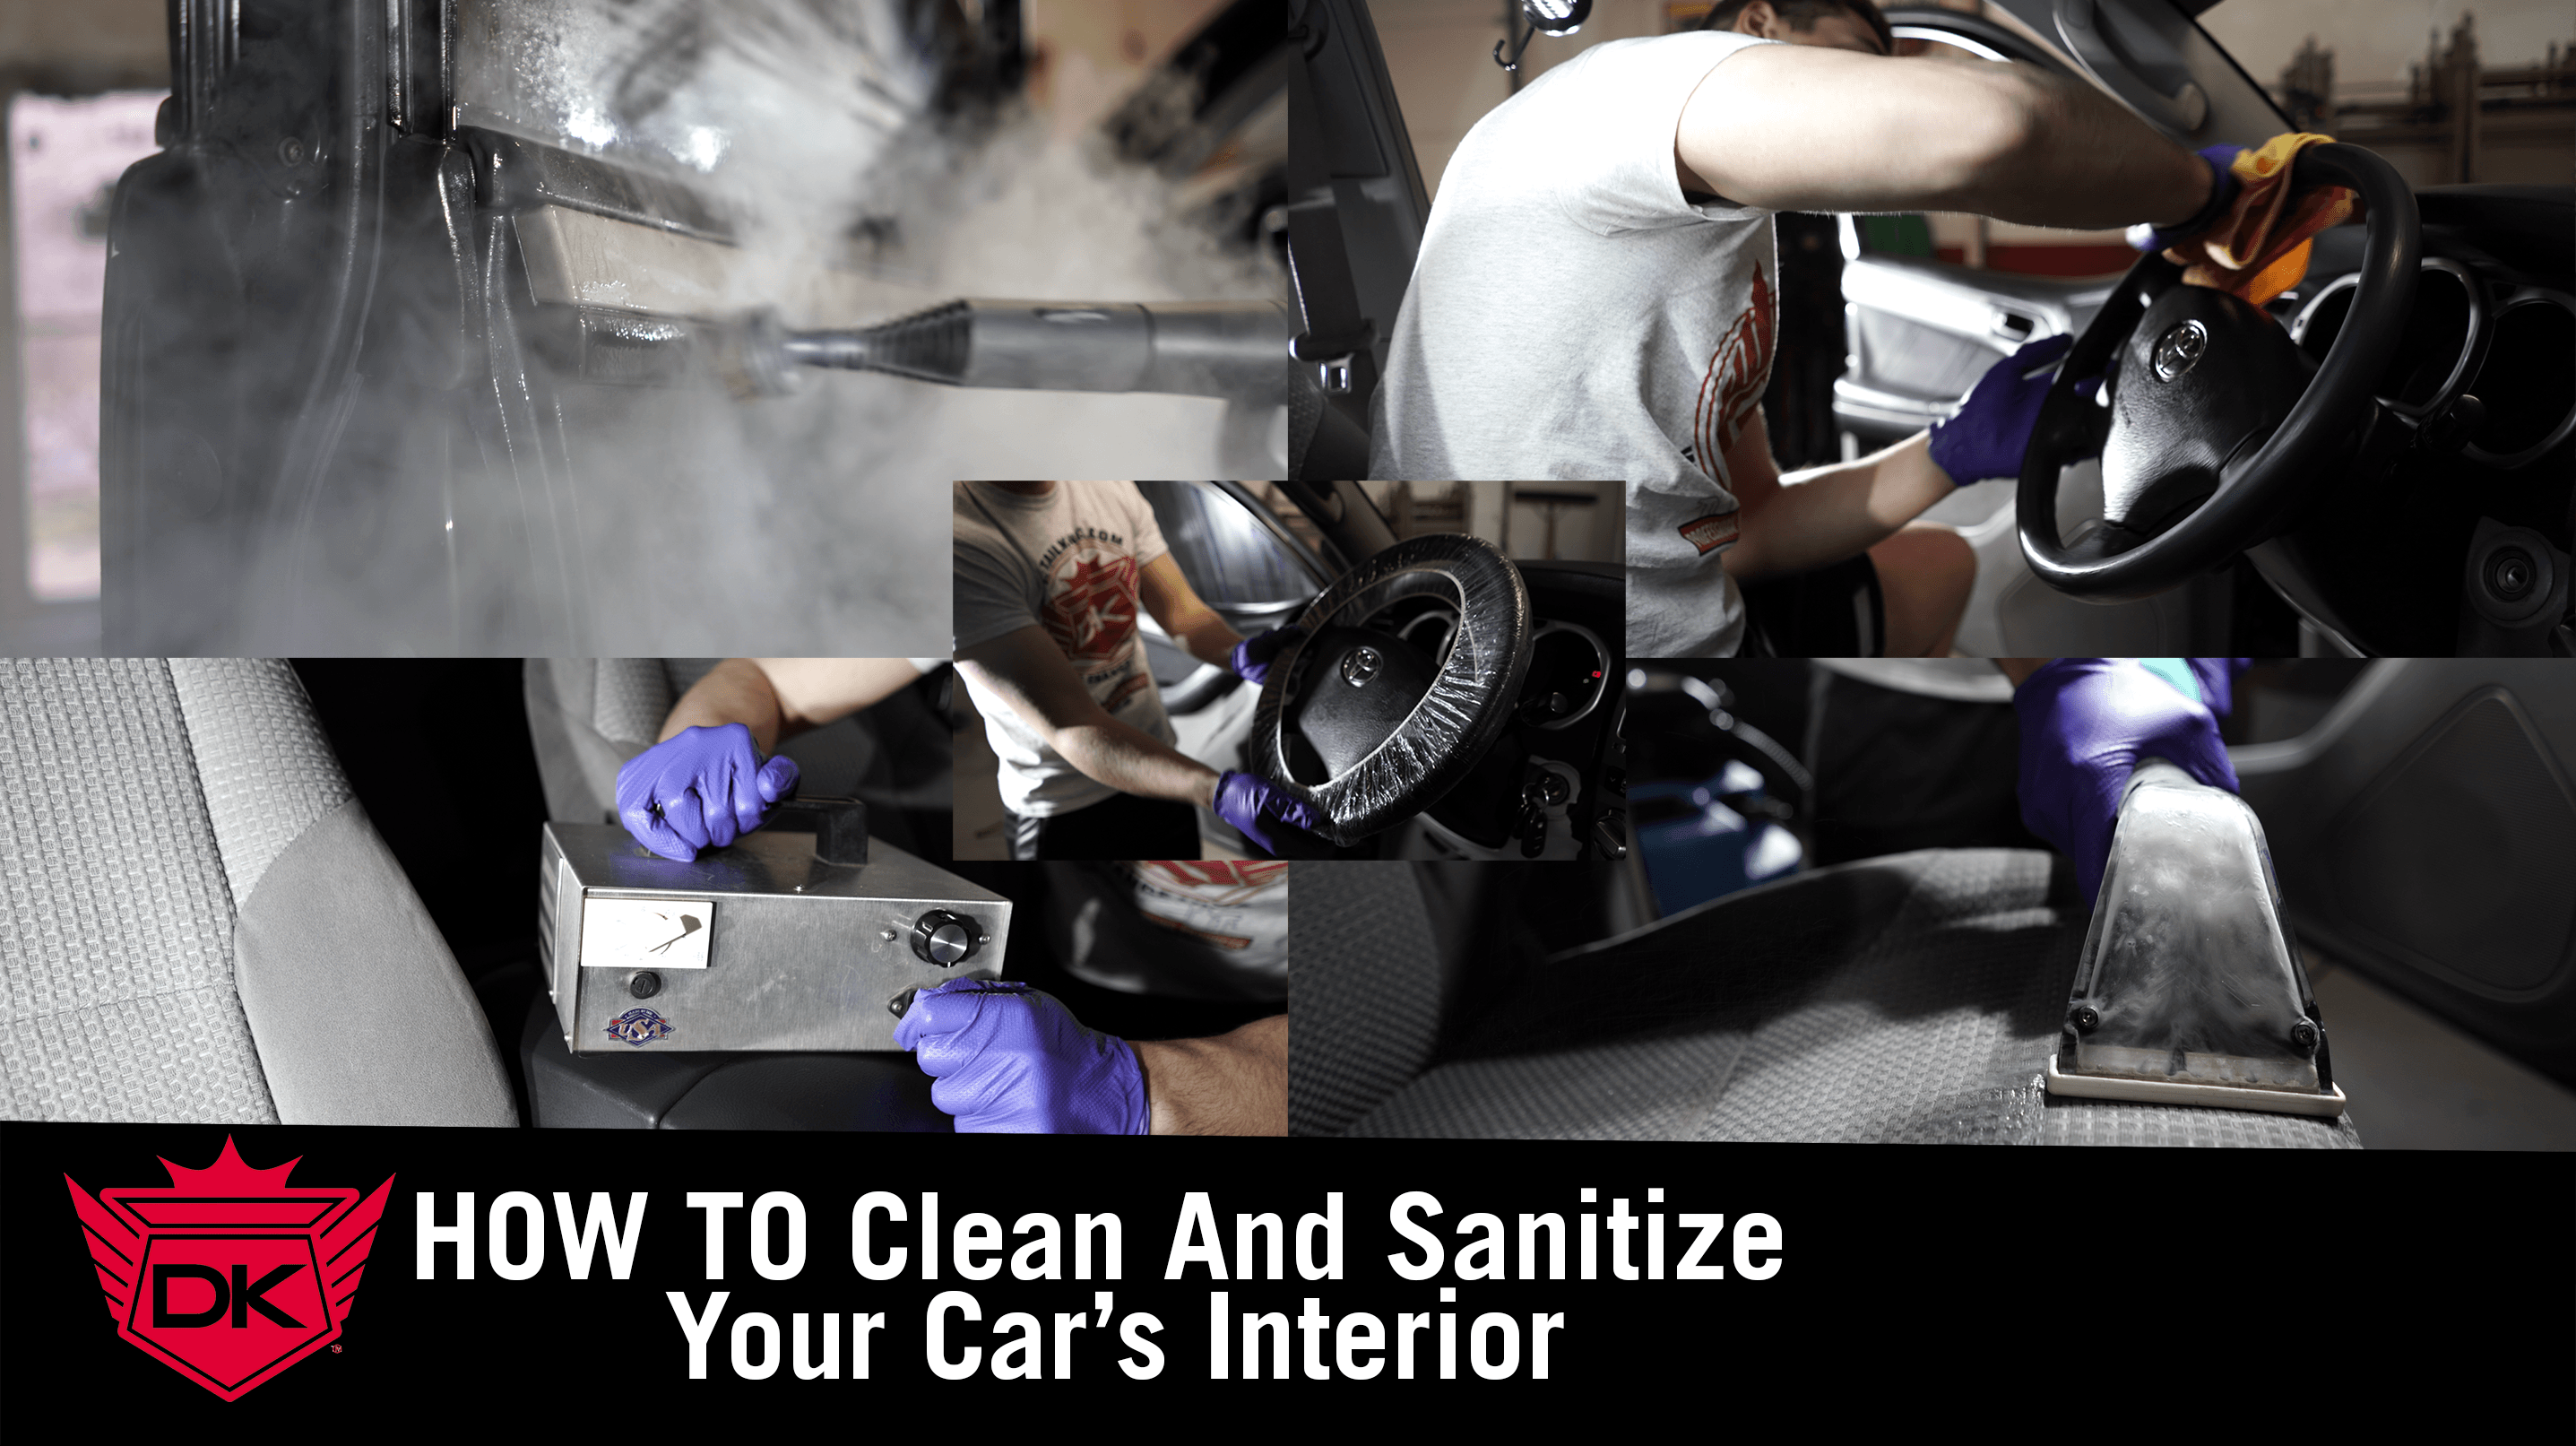 How to Clean and Sanitize Your Car's Interior